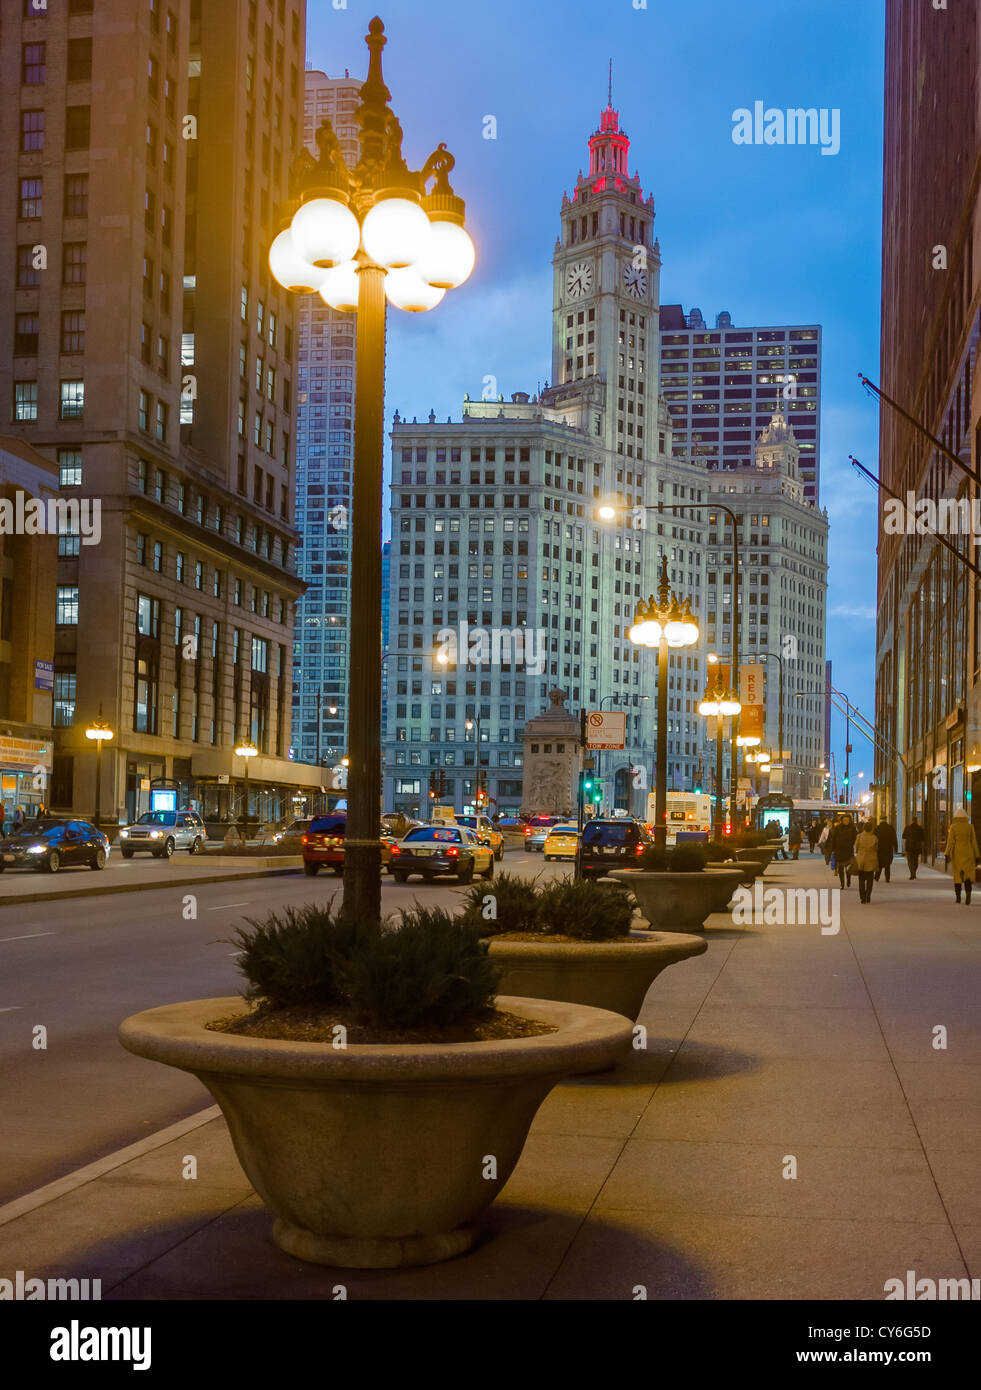 Chicago, Illinois View of the Wrigley Building on Michigan Avenue at night - Stock Image